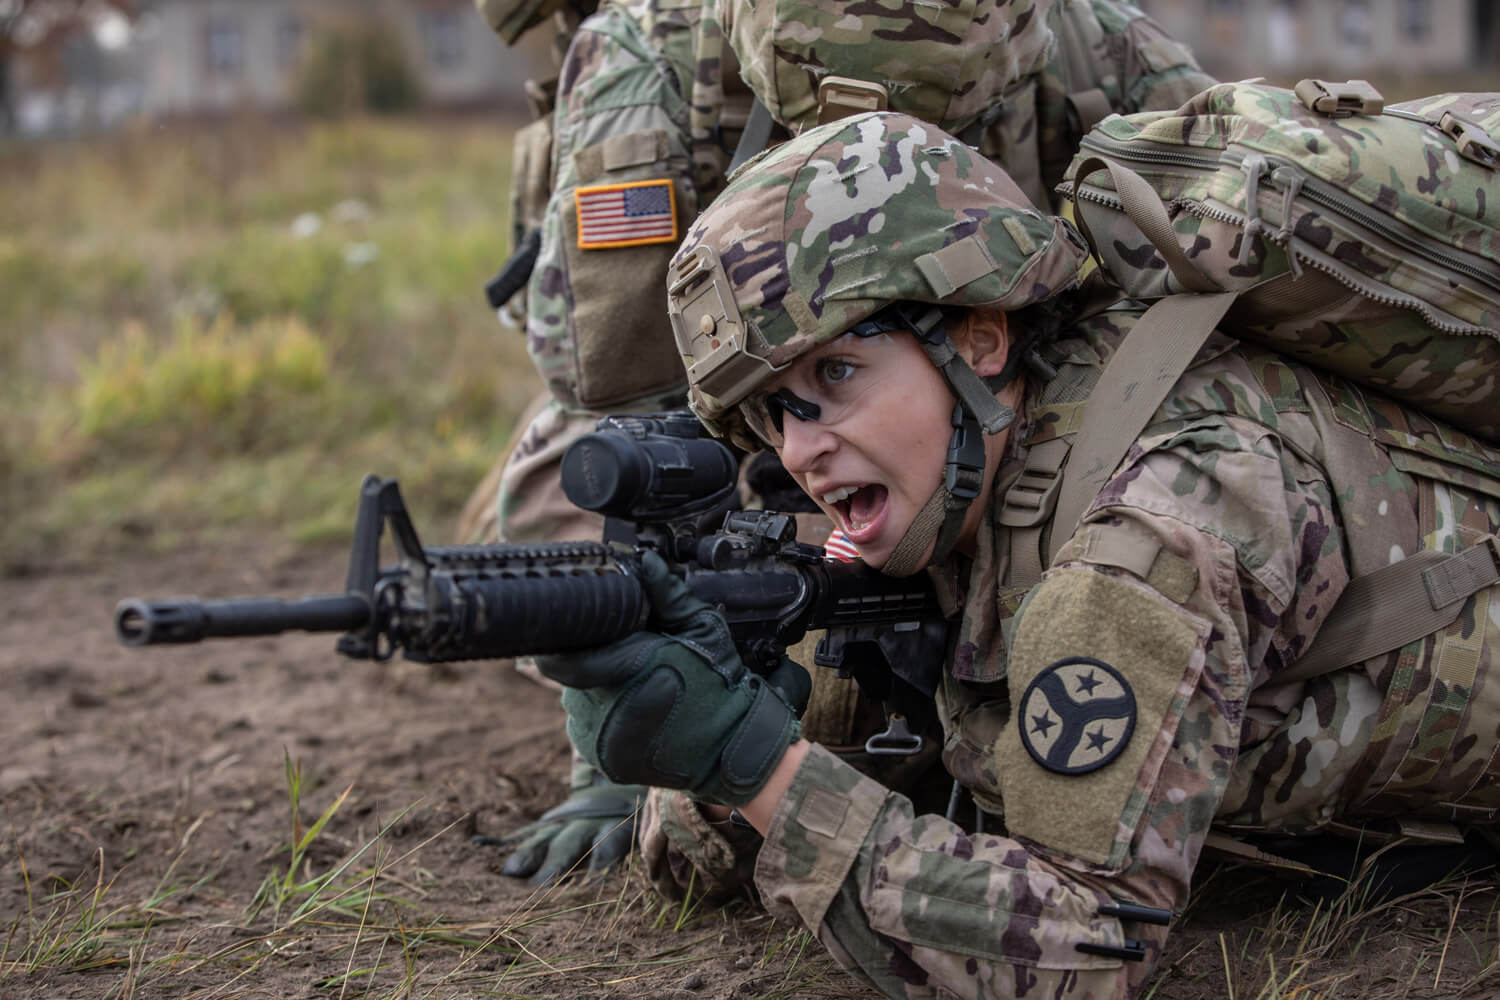 SPC Natalie Lajune, a combat medic with Battle Group Poland's Task Force Raider, directs her firing squad toward their next maneuver during a care under fire training exercise at Bemowo Piskie Training Area, Poland, October 2018. Task Force Raider is a detached forward element assigned with the Tennessee Army National Guard's 278th Armored Cavalry Regiment, headquartered out of Knoxville, Tenn. Tennessee Army National Guard photo by SGT Sarah Kirby